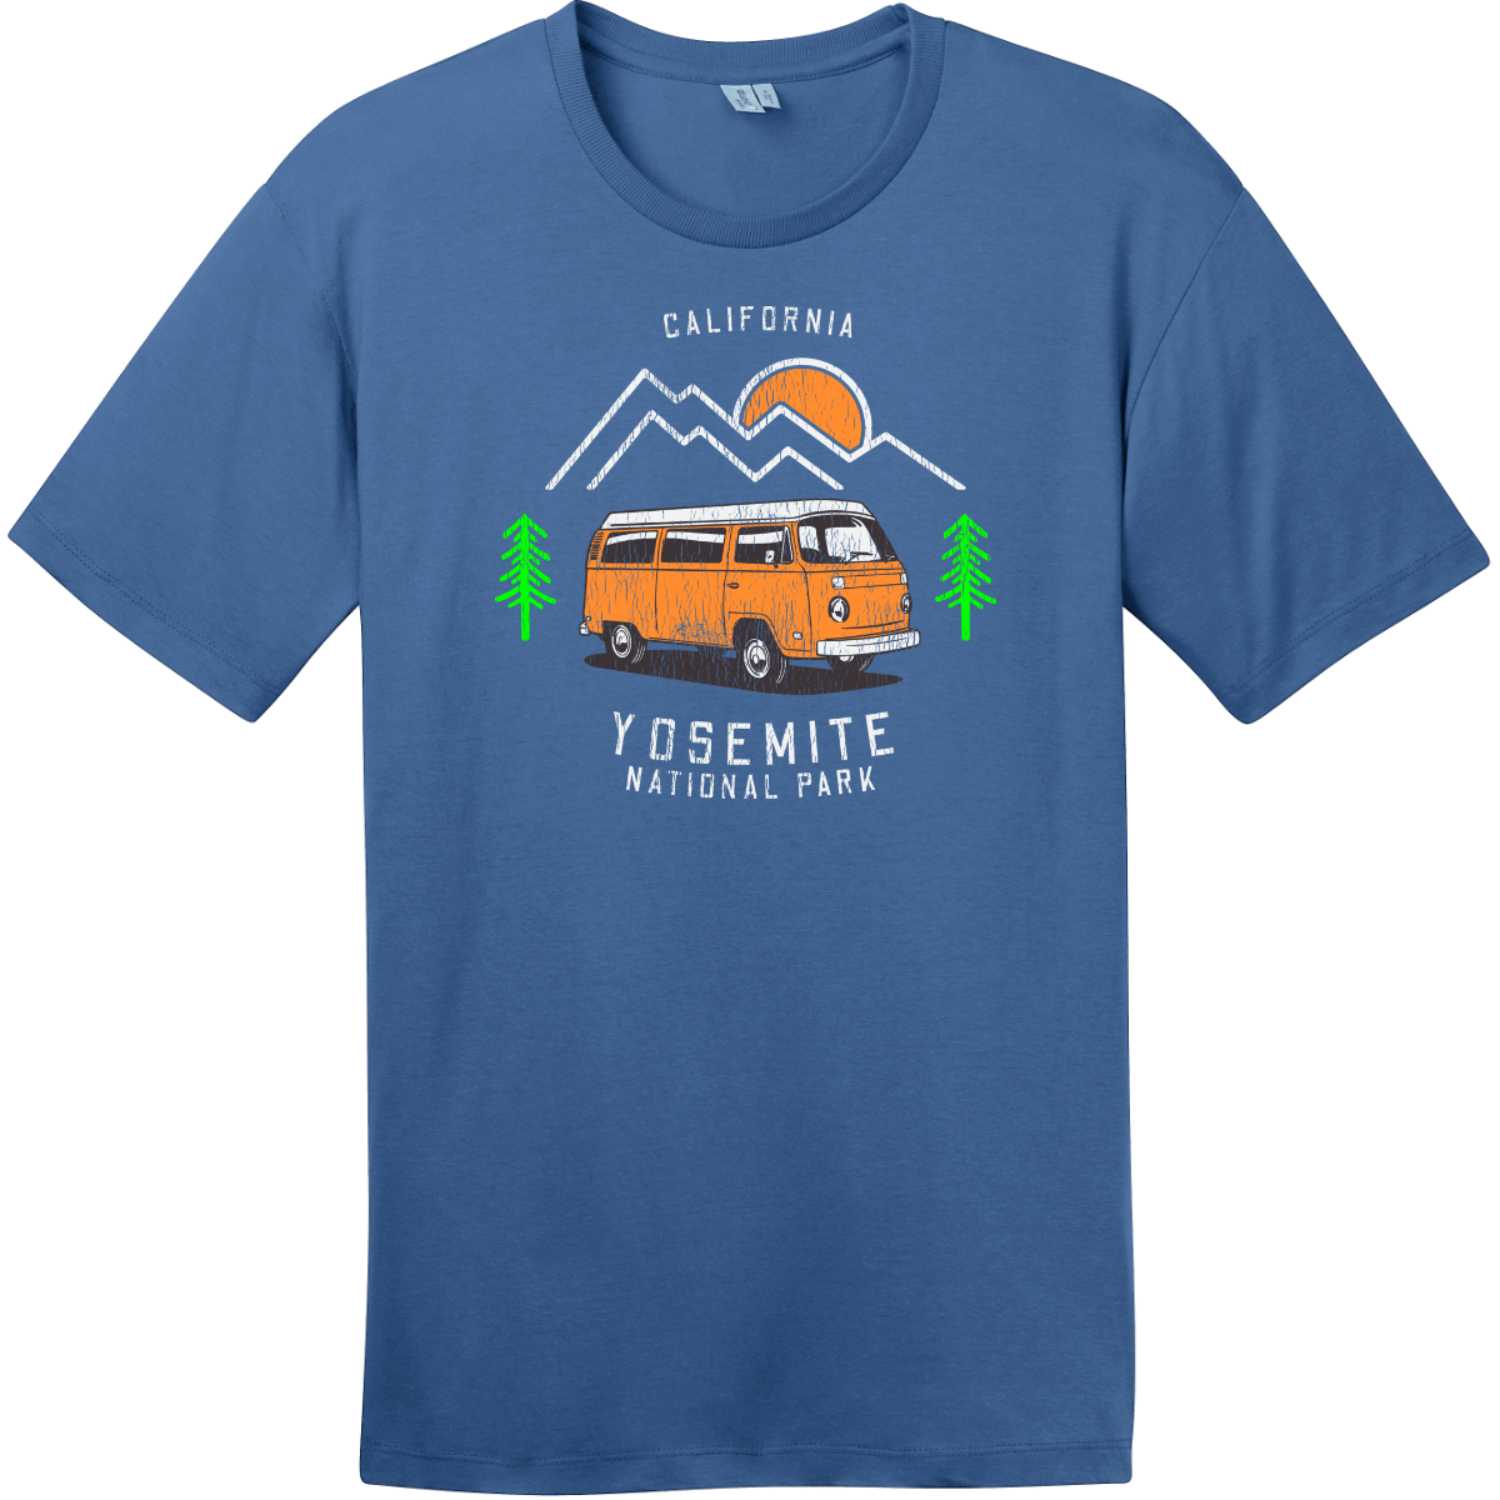 Yosemite Park Road Trip T-Shirt Maritime Blue District Perfect Weight Tee DT104